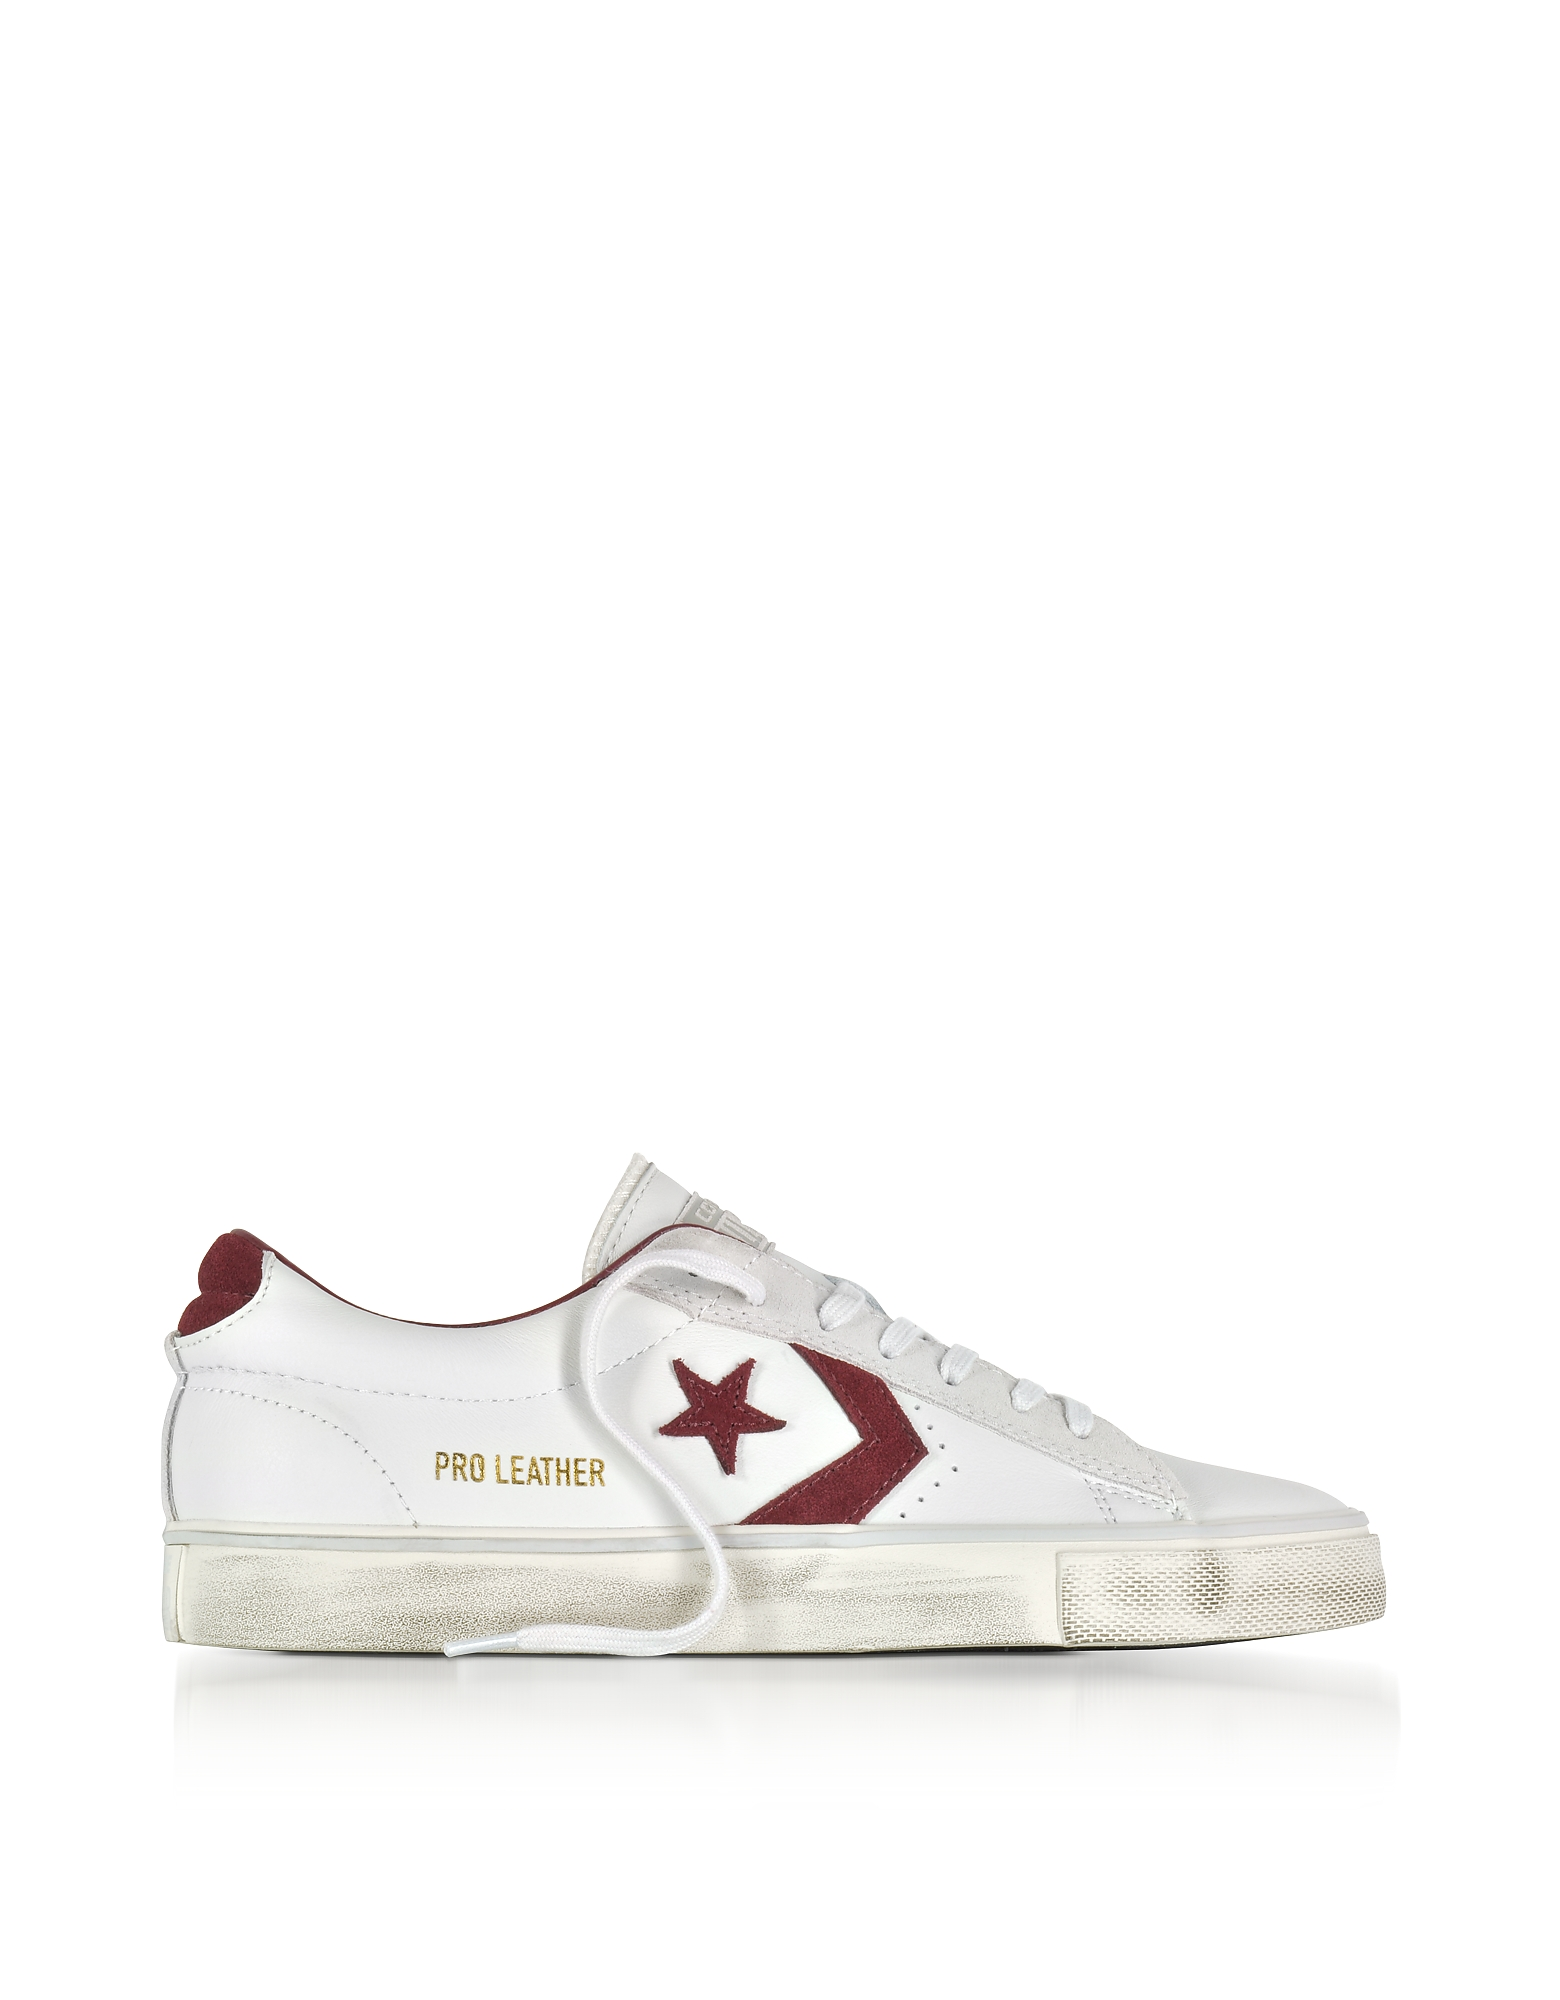 Converse Limited Edition Shoes, Pro Leather Vulc Low Distressed White Leather Sneakers